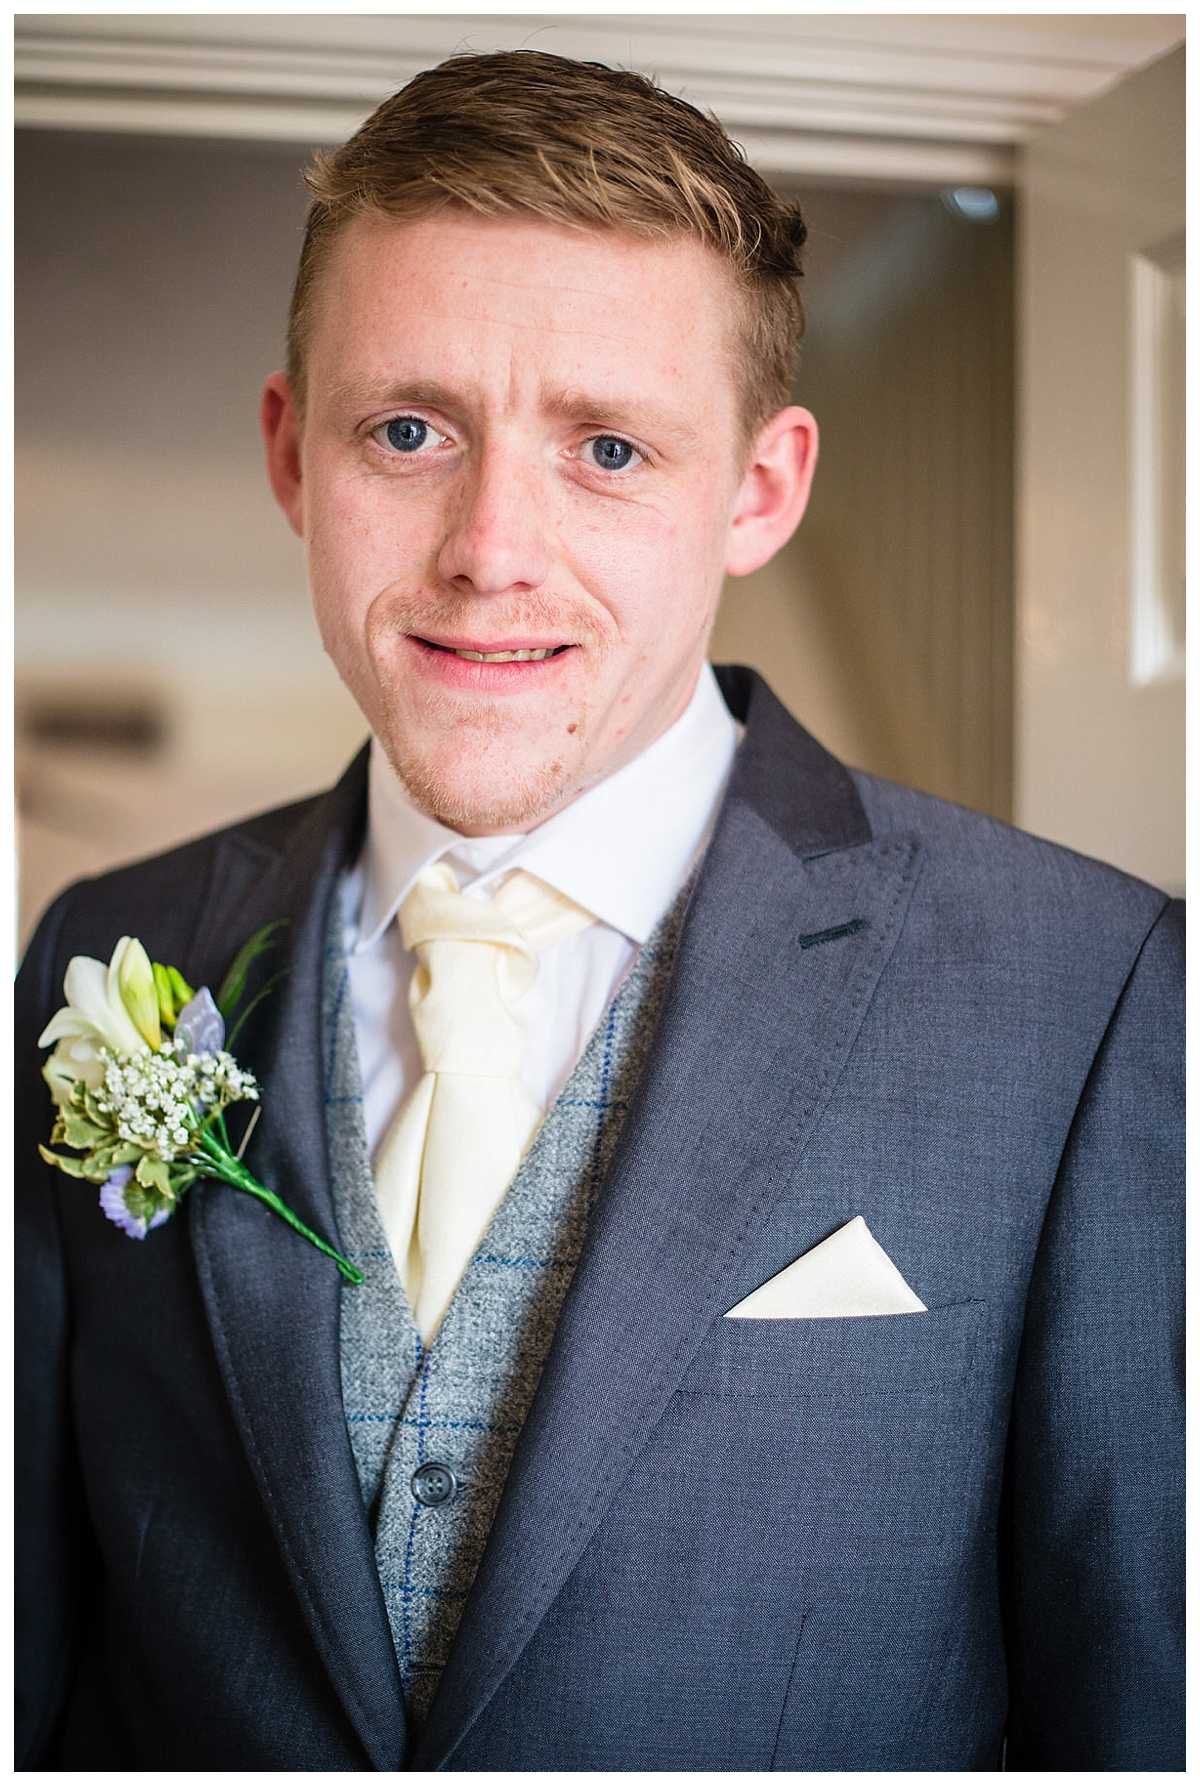 portrait of the groom wearing grey suit and pale yellow cravat and pocket square